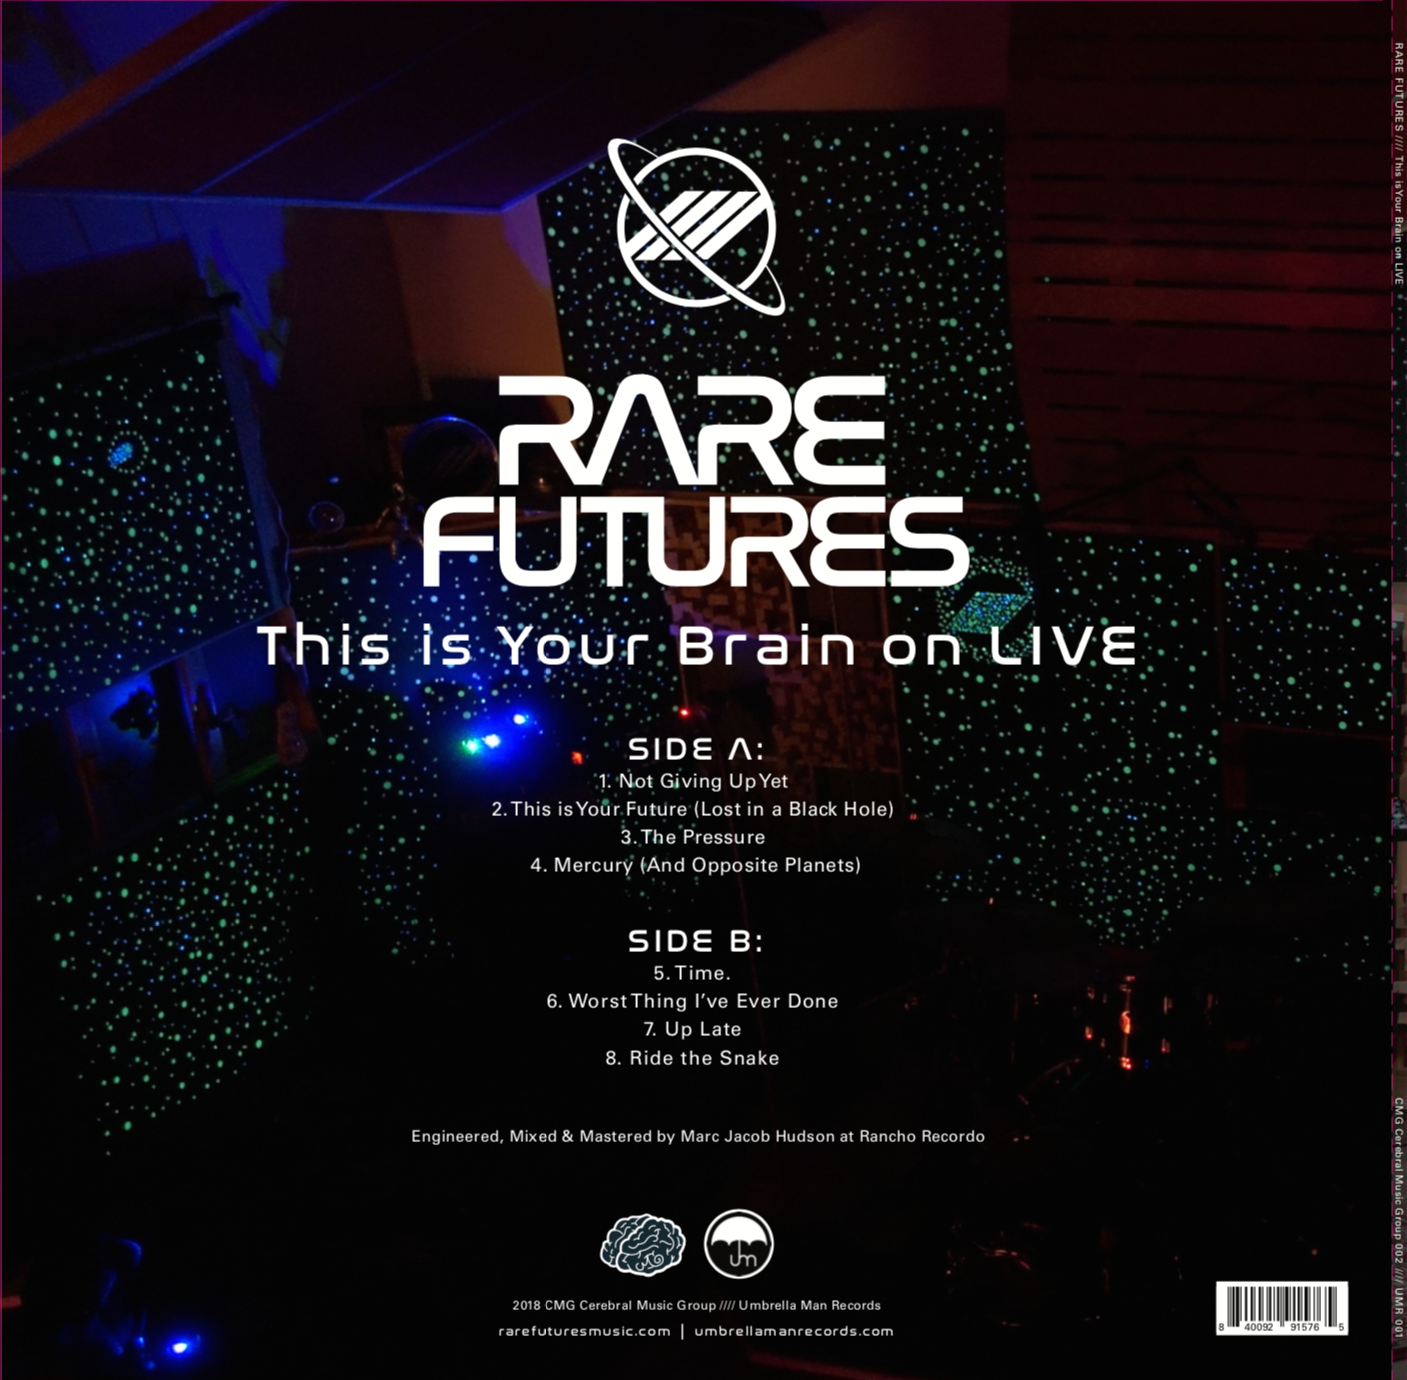 Rare Futures - This Is Your Brain On LIVE